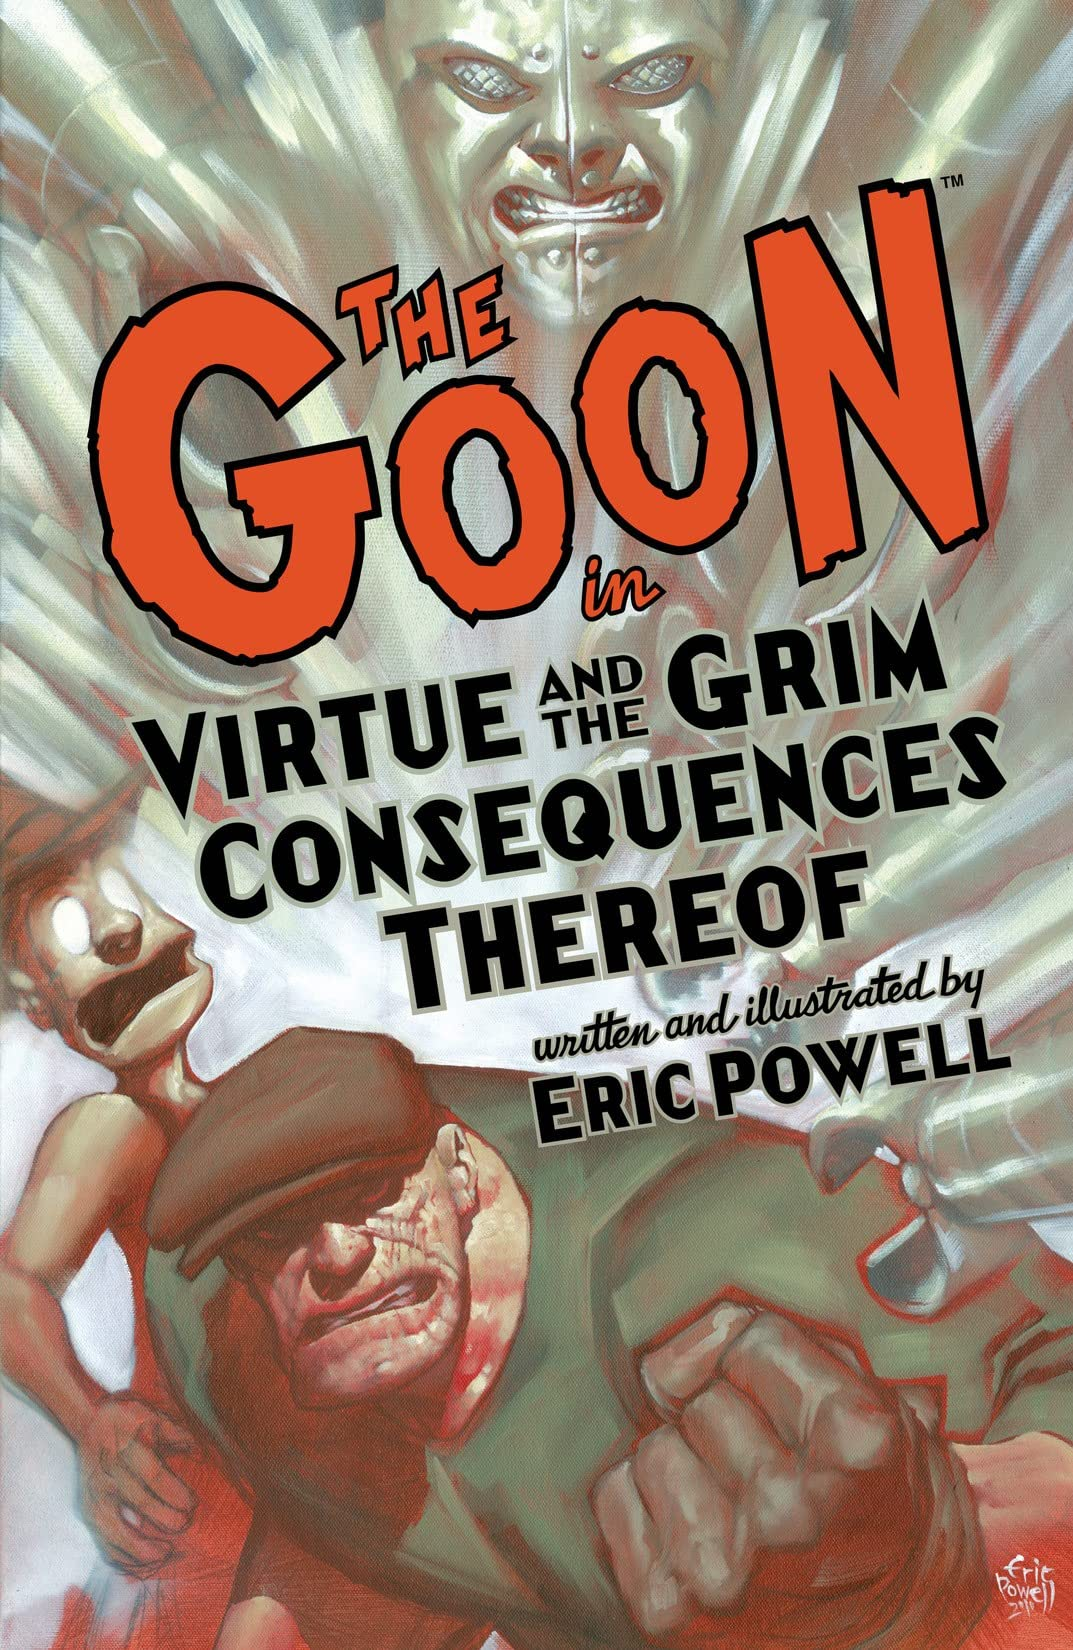 The Goon Vol. 4: Virtue & the Grim Consequences Thereof